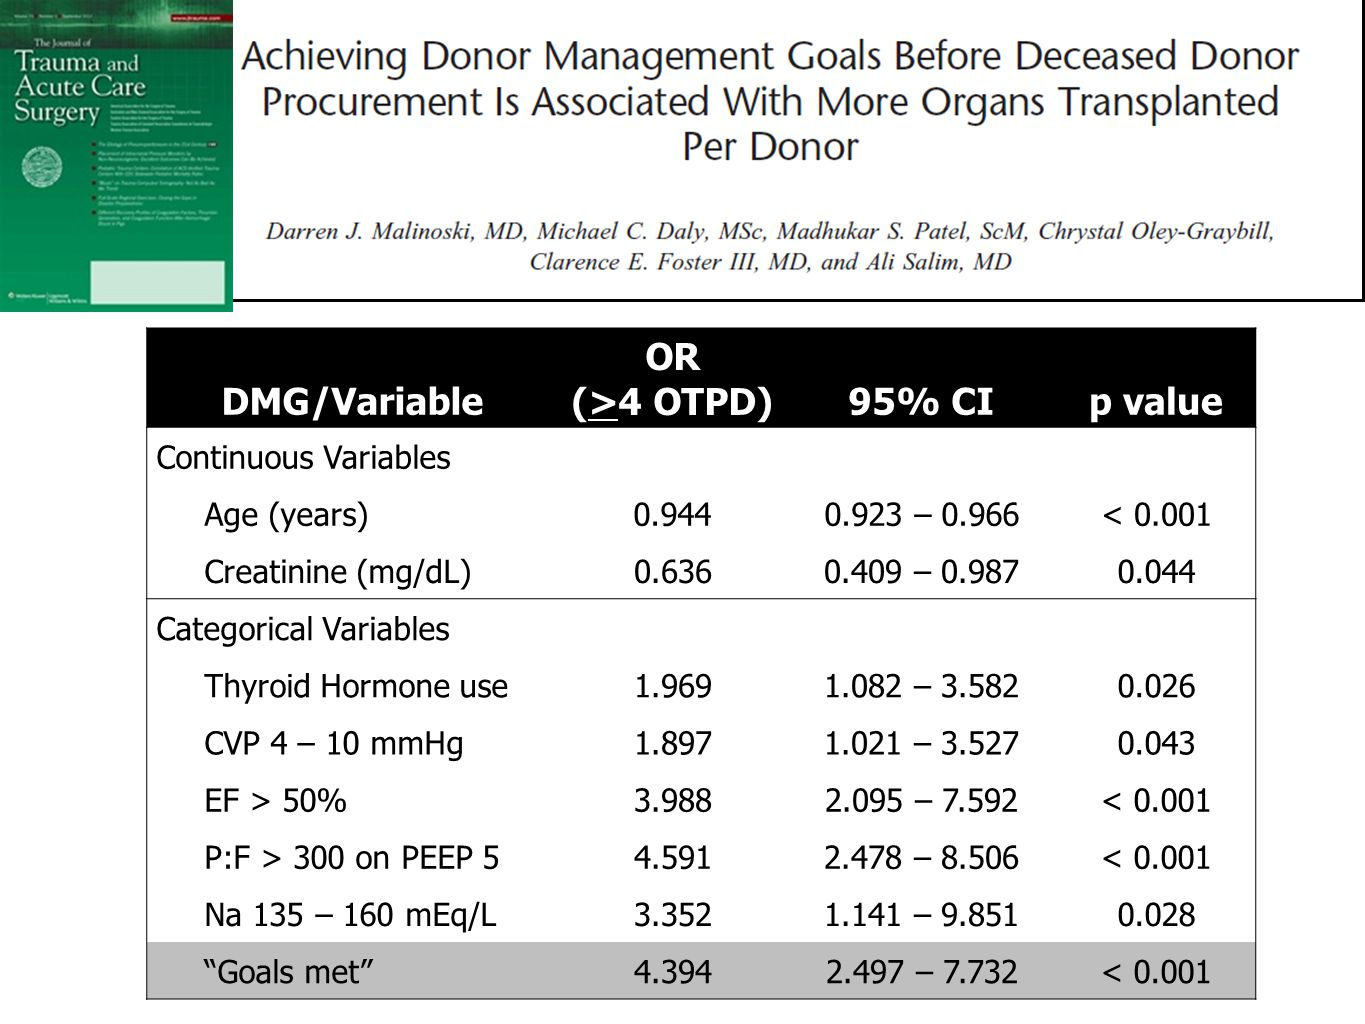 DMG/Variable OR (>4 OTPD) 95% CI p value